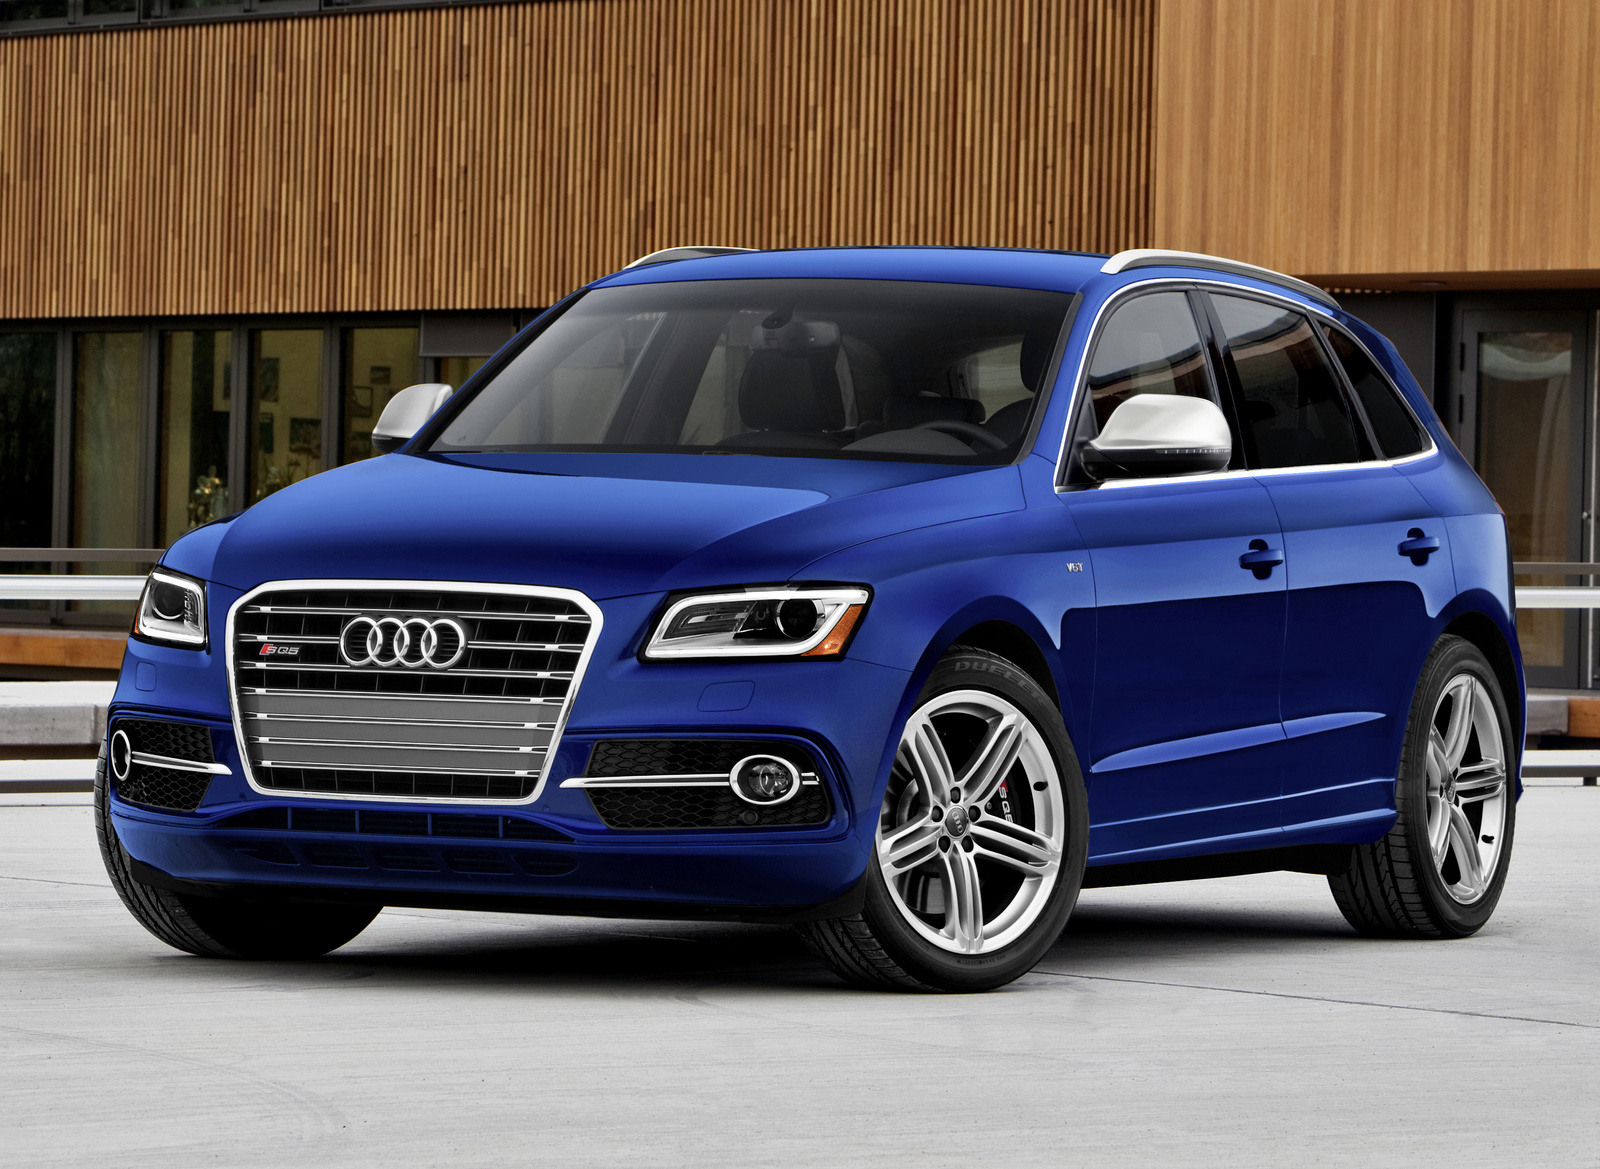 2014 Audi Sq5 Review Cargurus